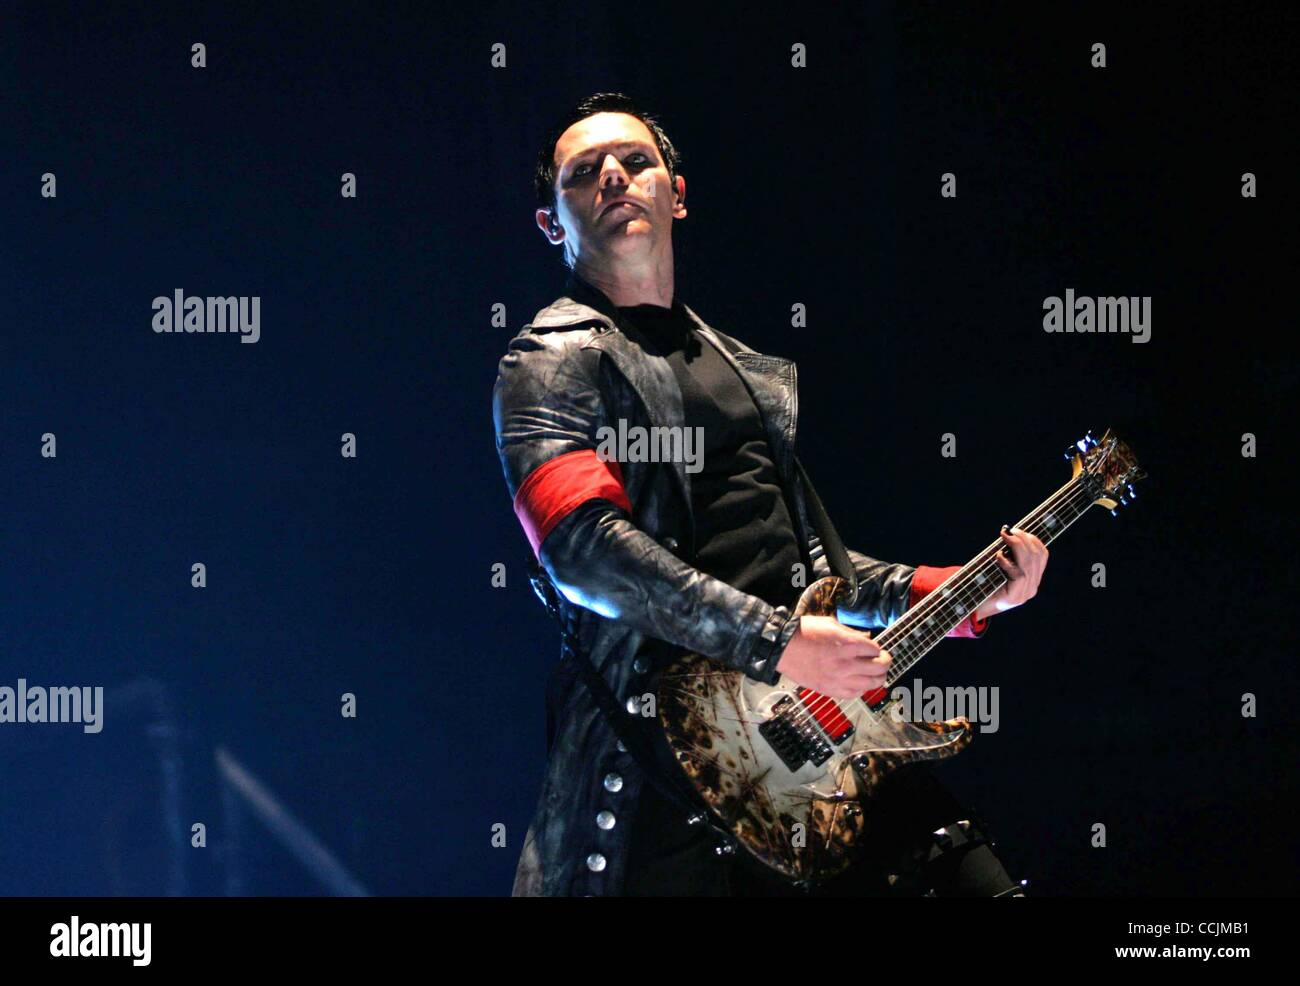 dec 11 2010 new york new york u s rammstein performs in stock photo royalty free image. Black Bedroom Furniture Sets. Home Design Ideas